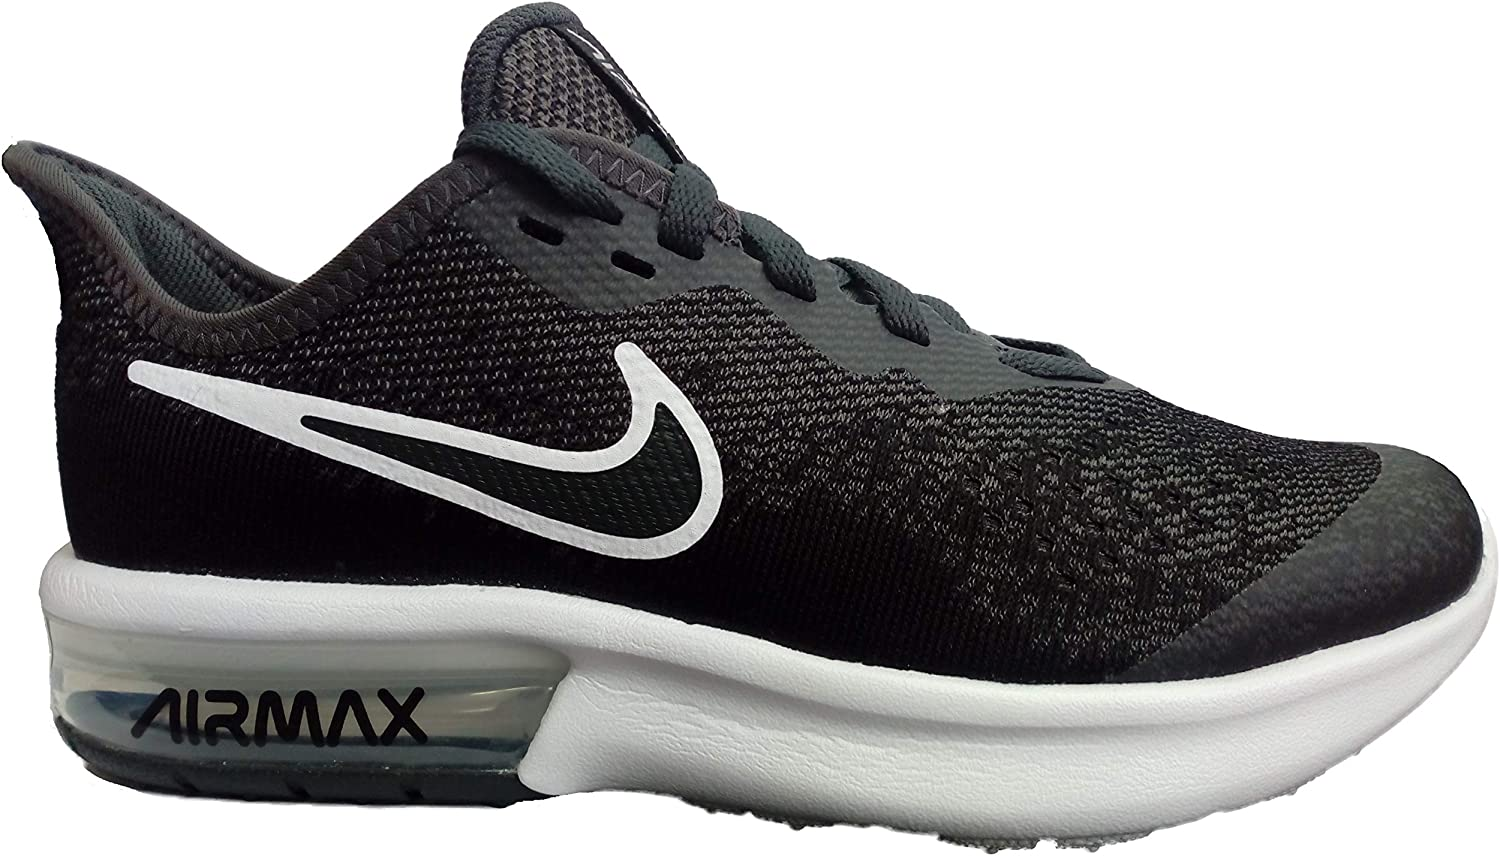 Nike Men's Air Max Sequent 4 Ep (gs) Track & Field shoes, Multicolour (Anthracite Black Metallic Silver White 000), 6 UK